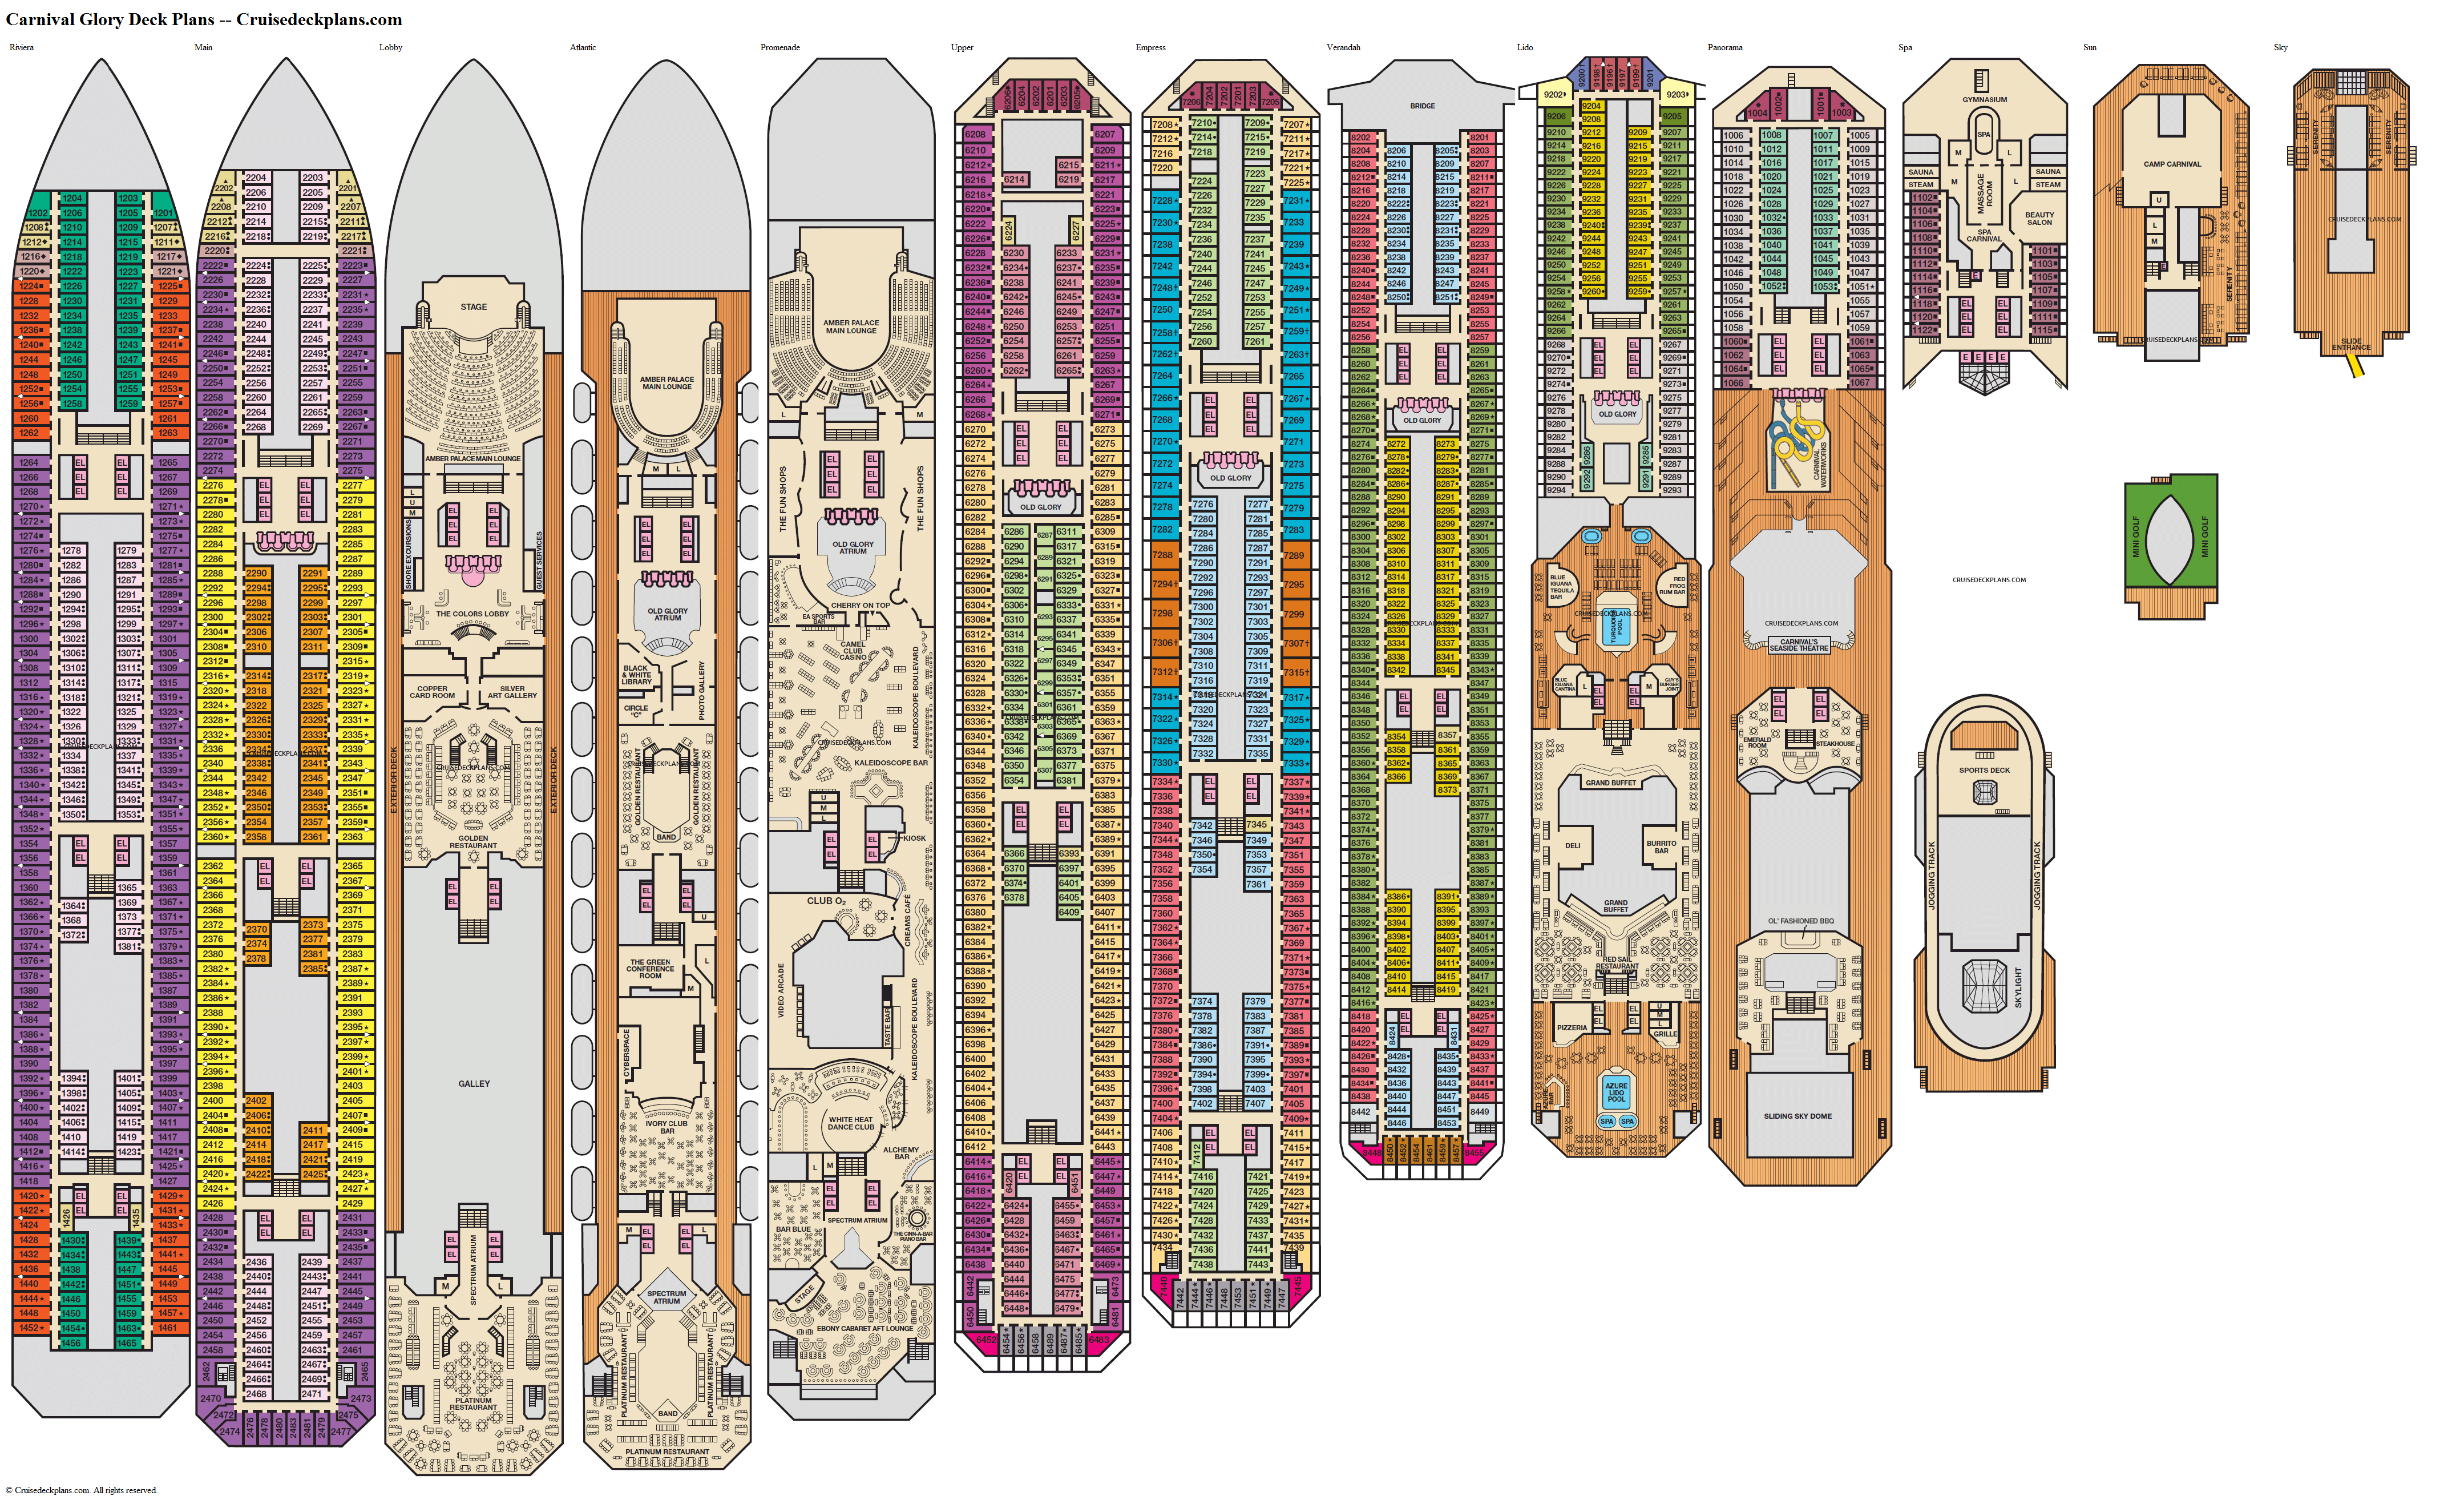 Carnival Glory deck plans image